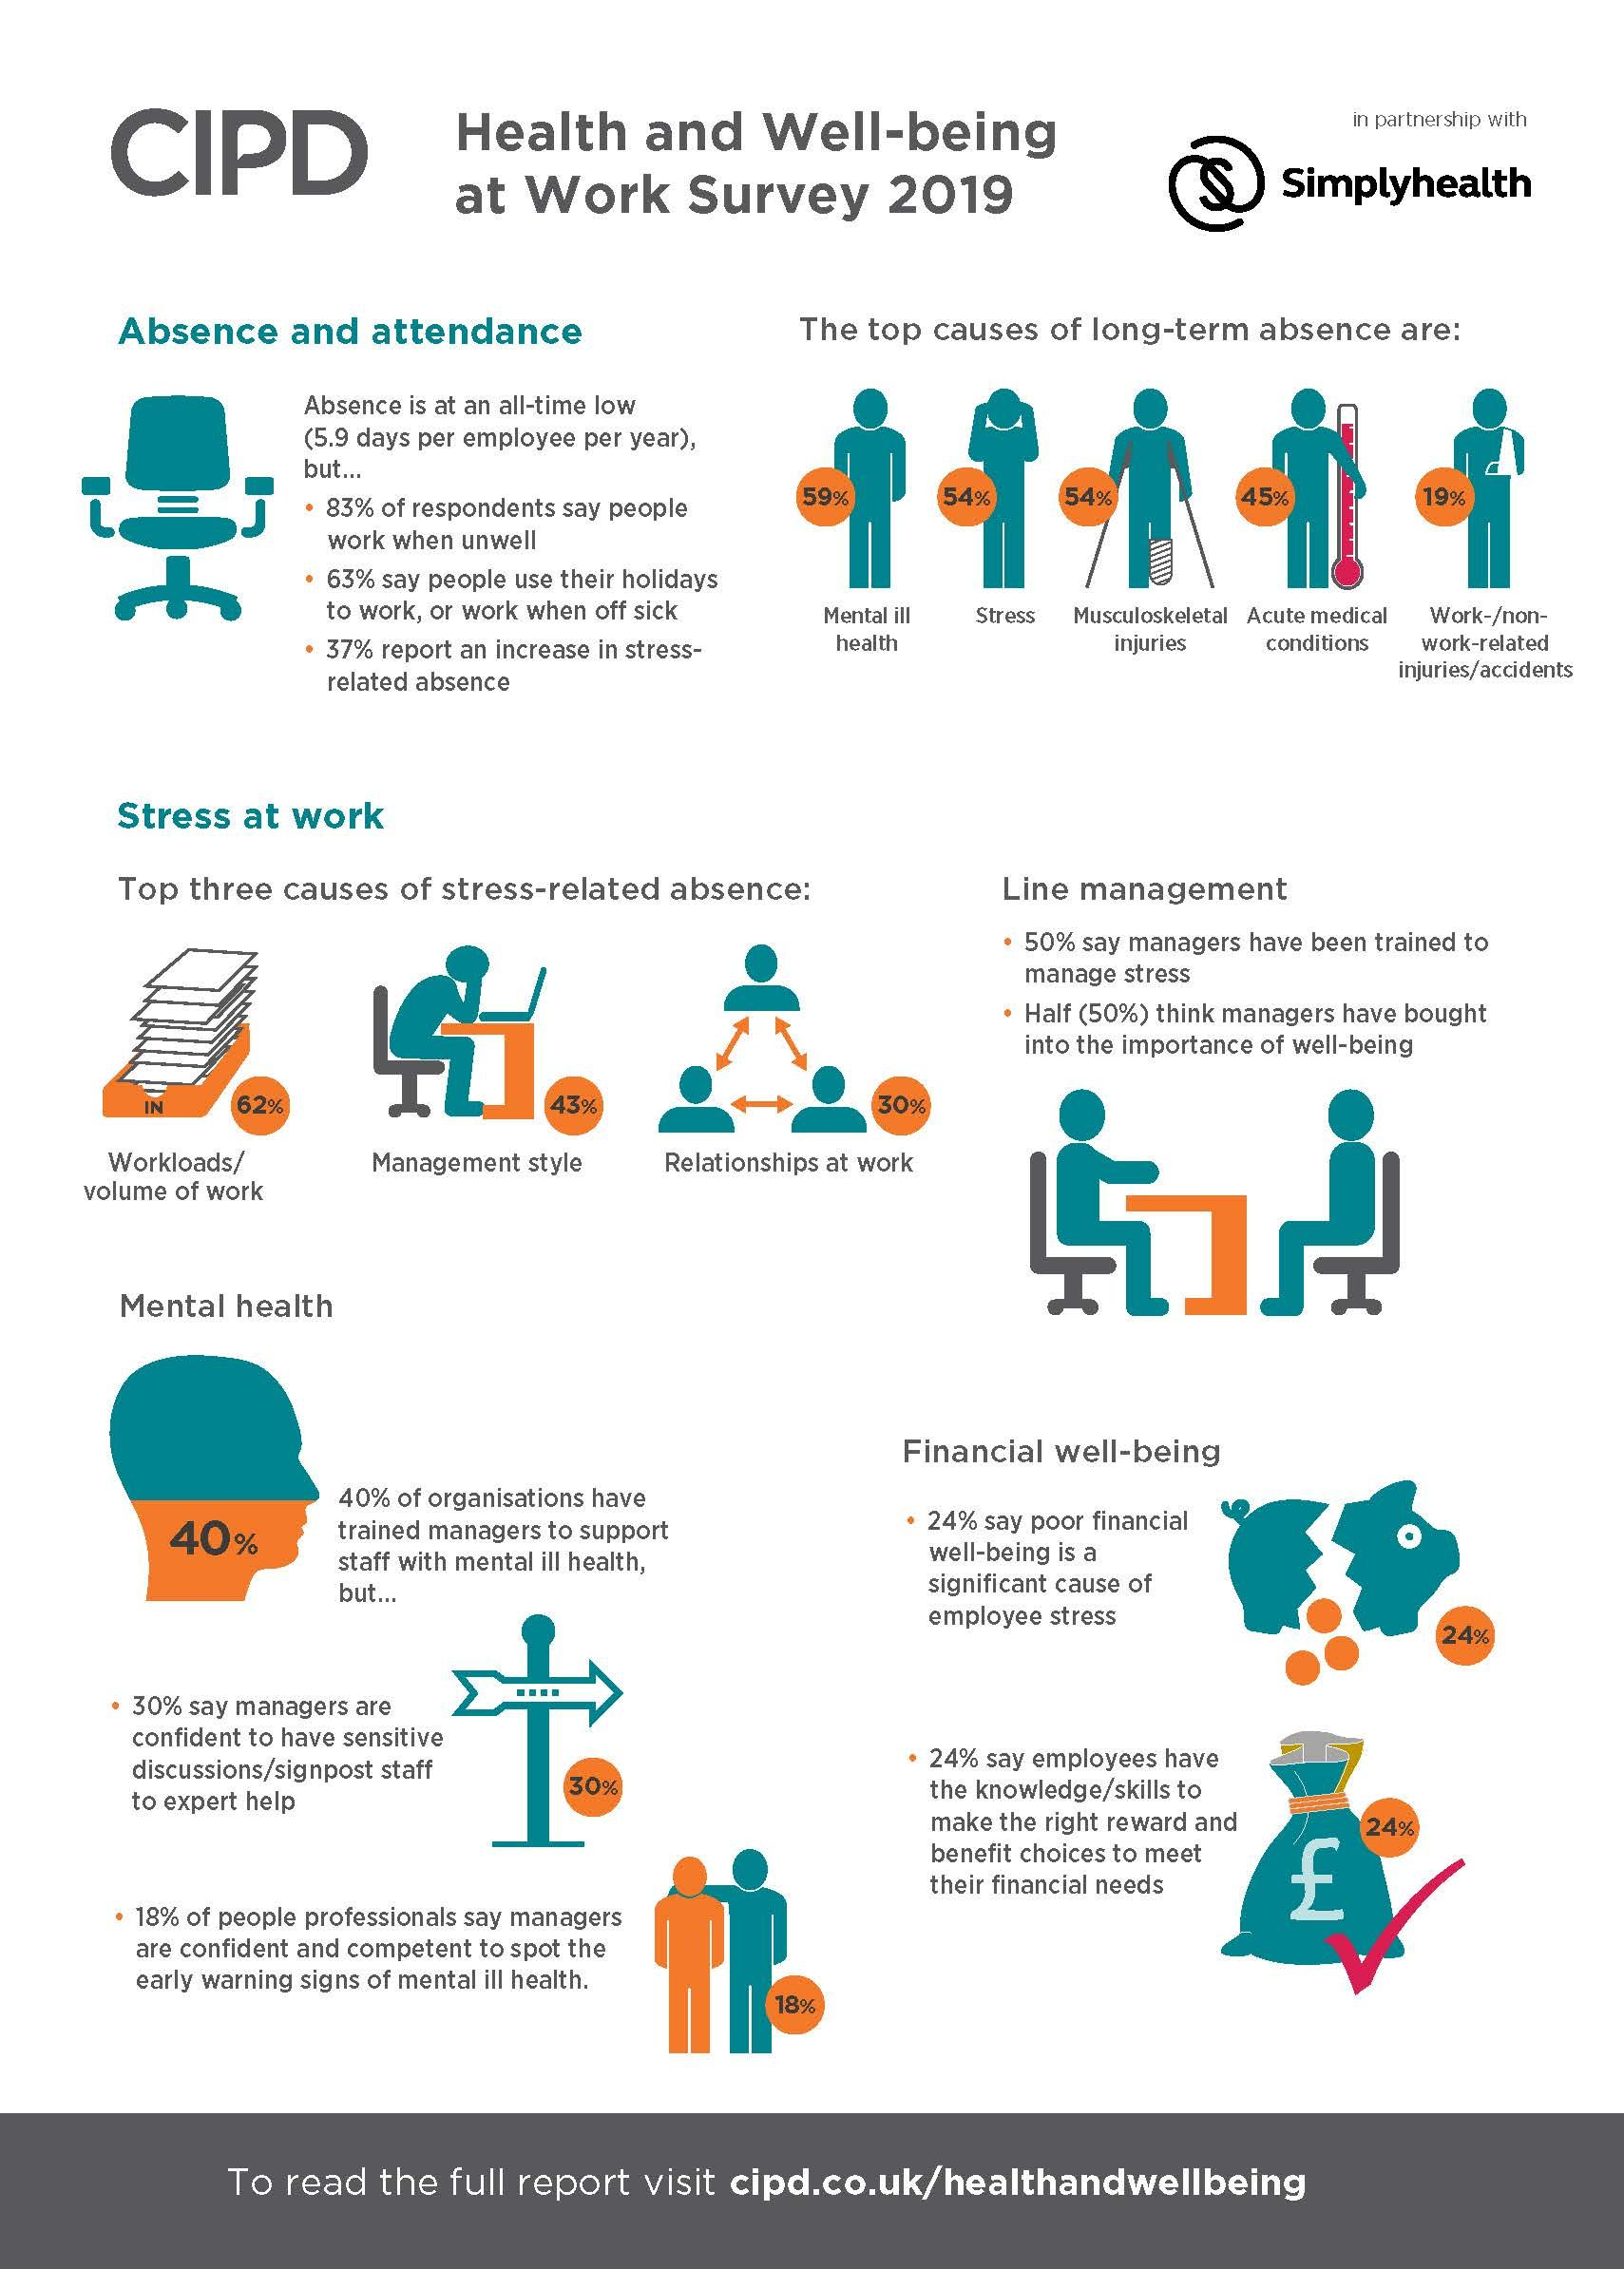 Health and Wellbeing at Work Infographic Health and